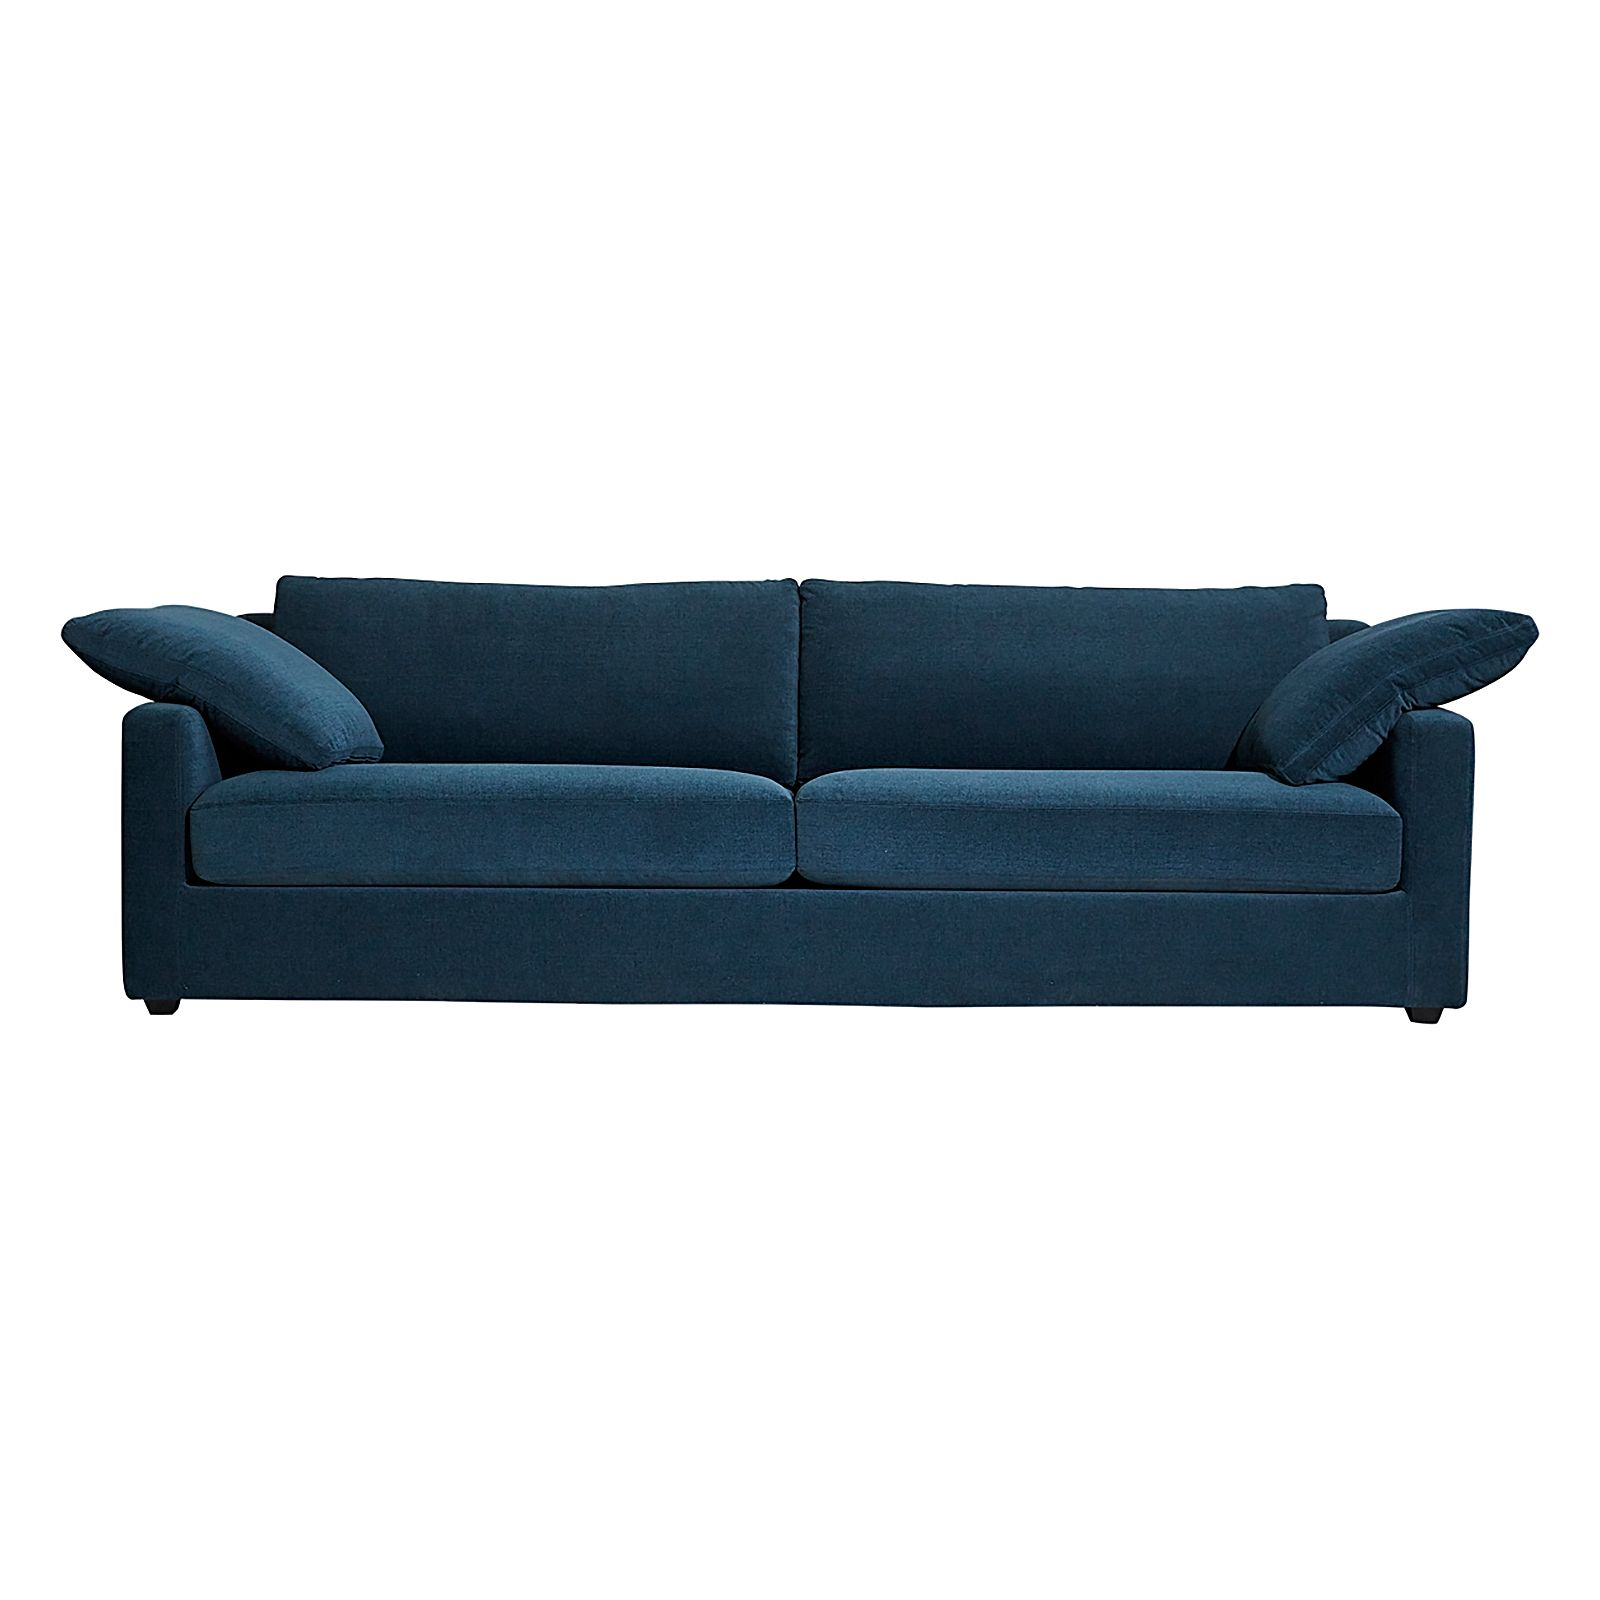 California-3-Seater-Sofa